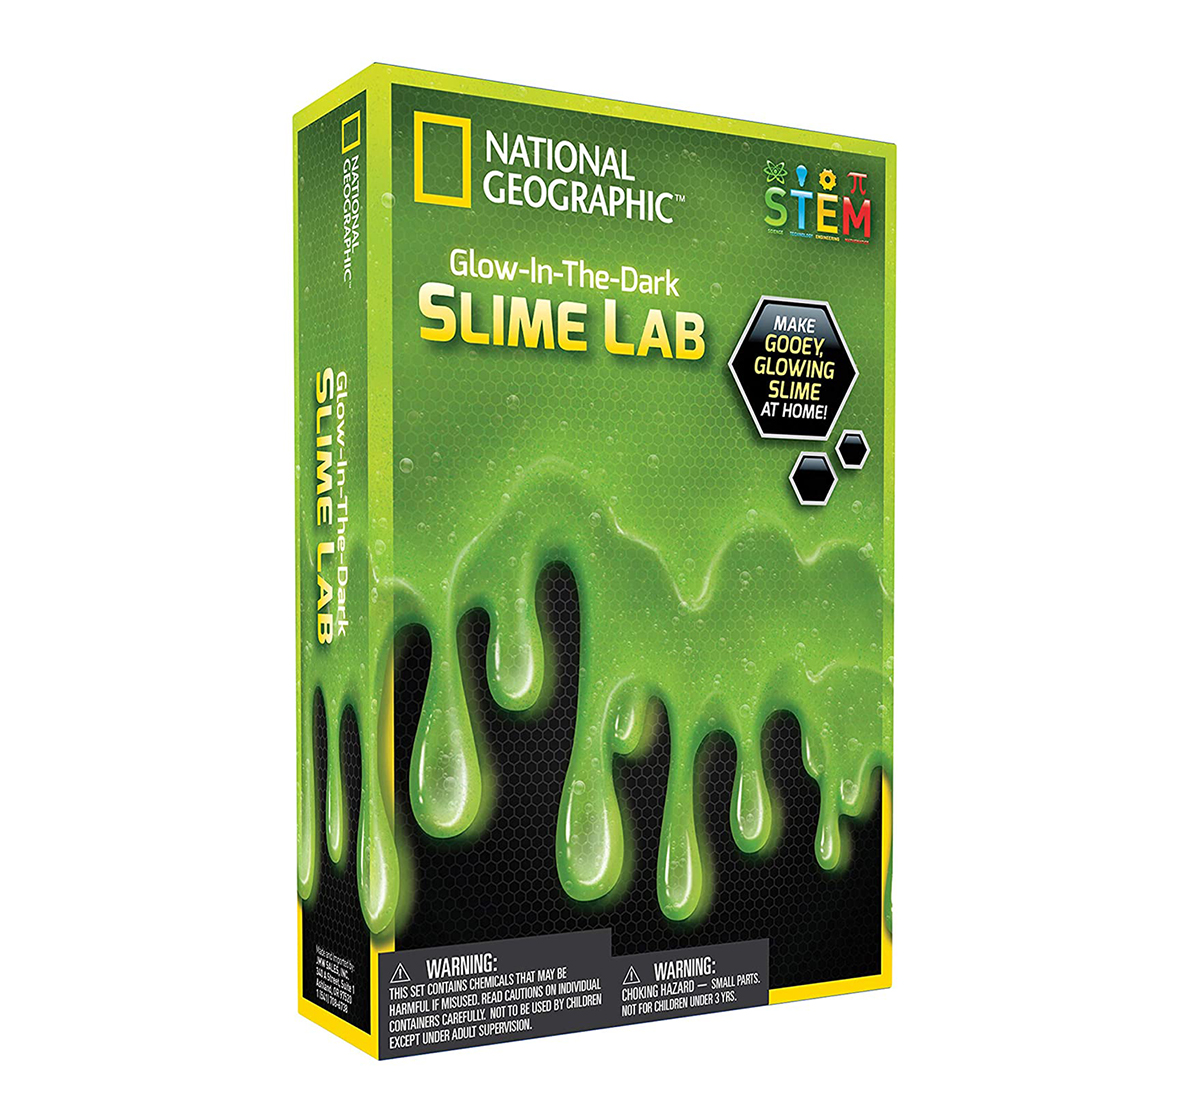 National Geographic   National Geographic Slime DIY Science Lab for Kids age 6Y+ (Green)